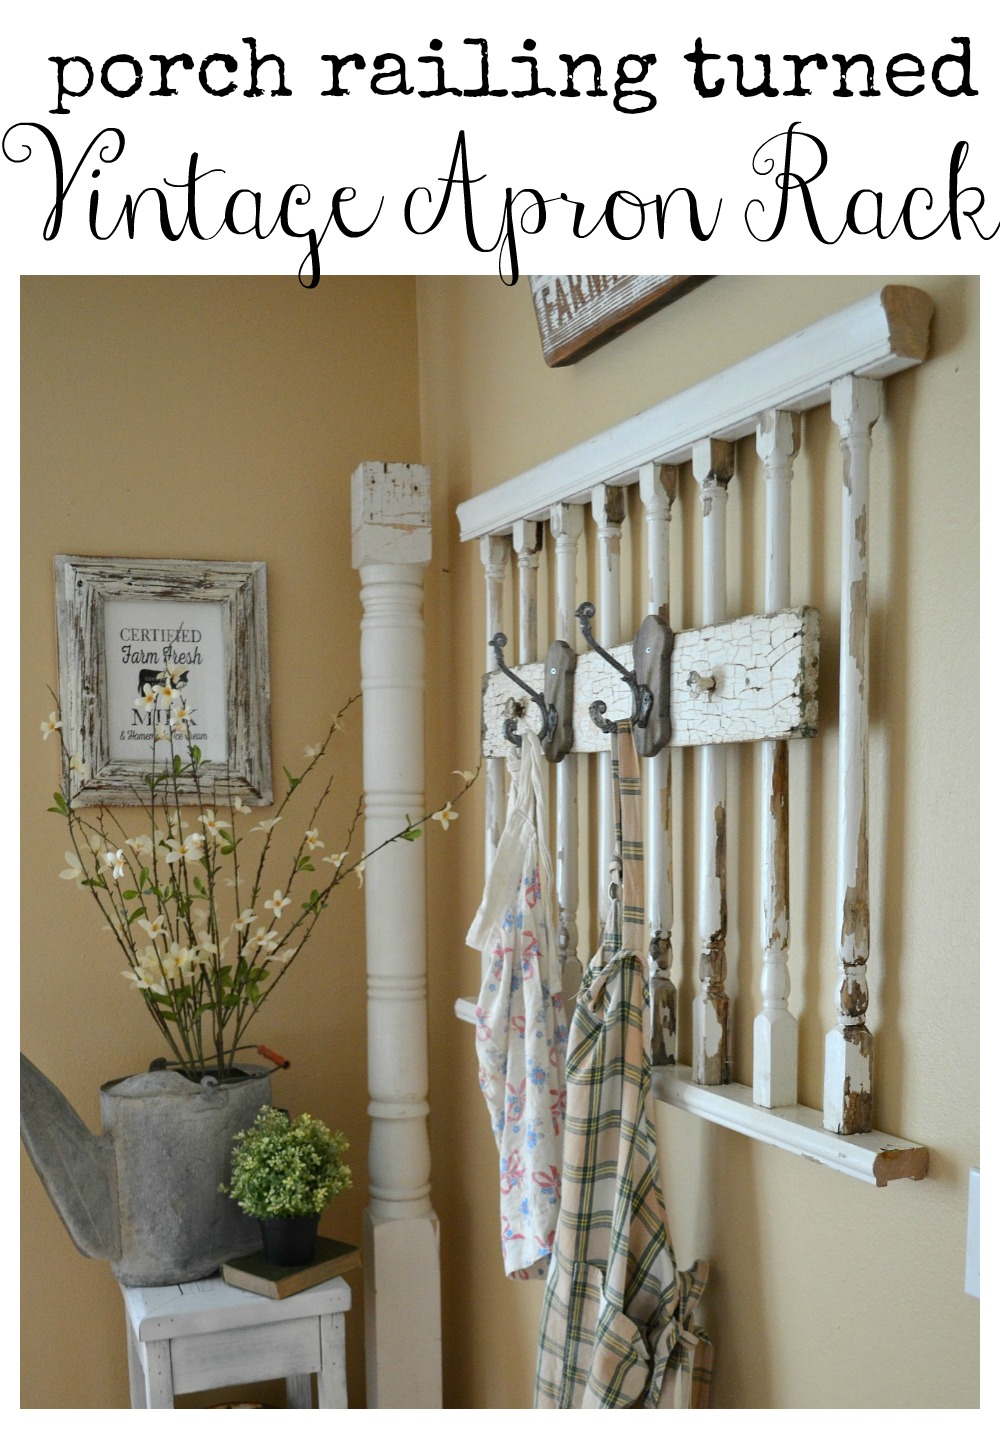 DIY Porch Railing Turned Vintage Apron Rack